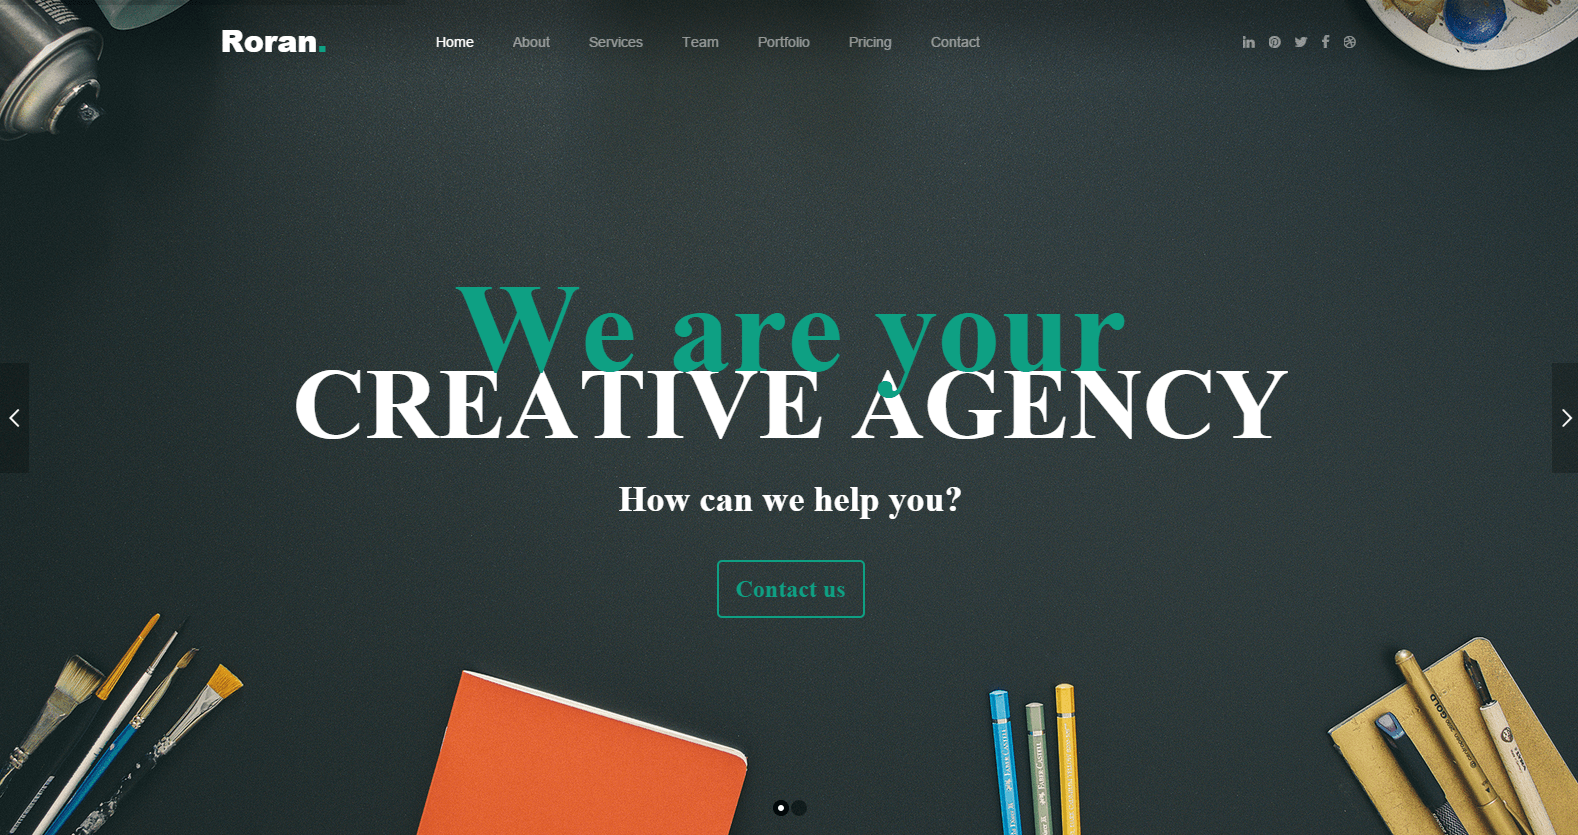 roran landing page wordpress theme